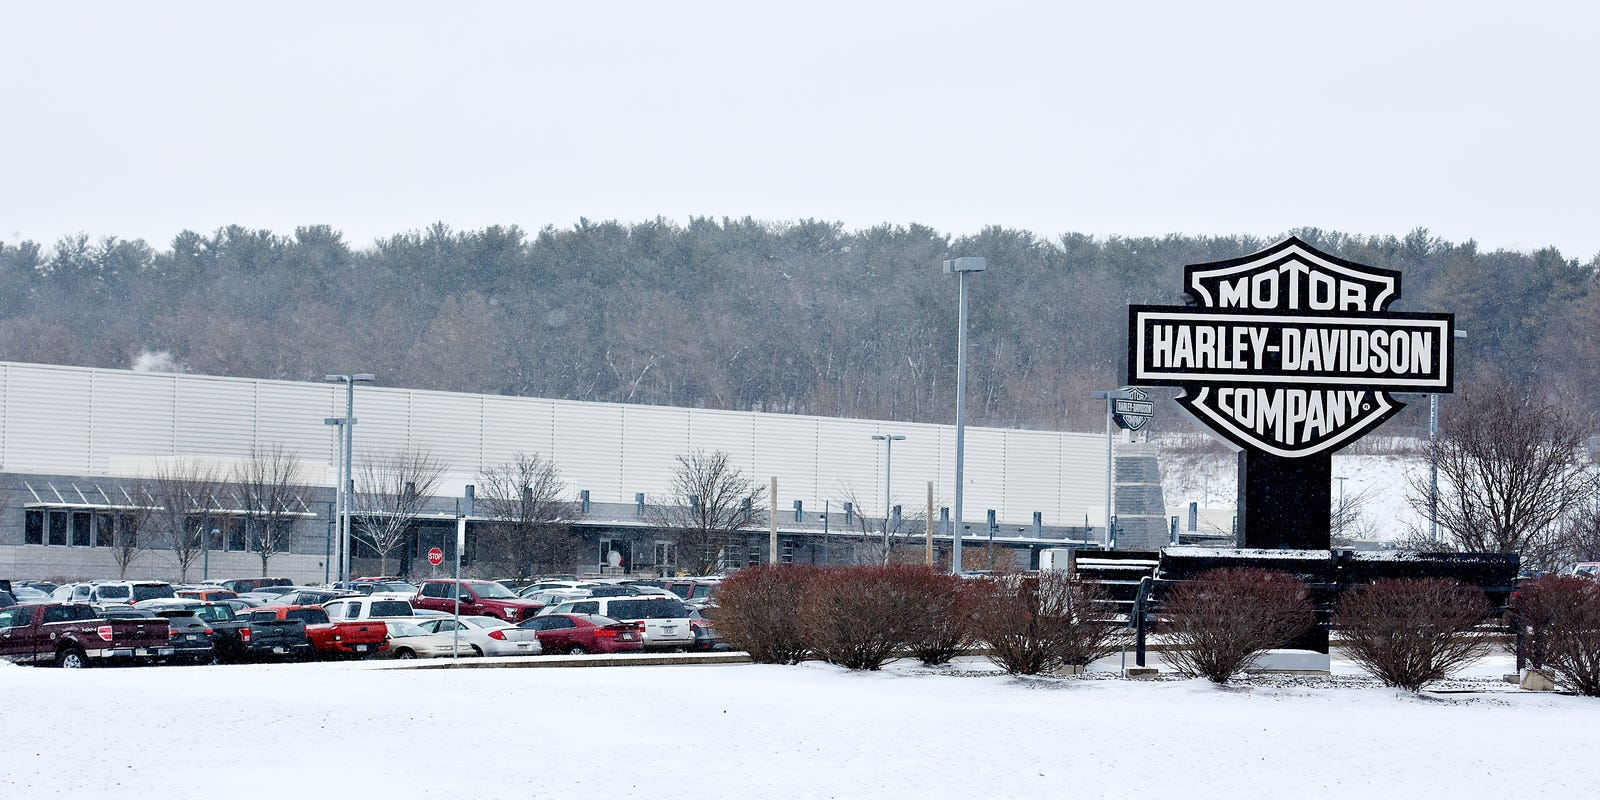 Bomb threat reported at Springetts Harley-Davidson plant